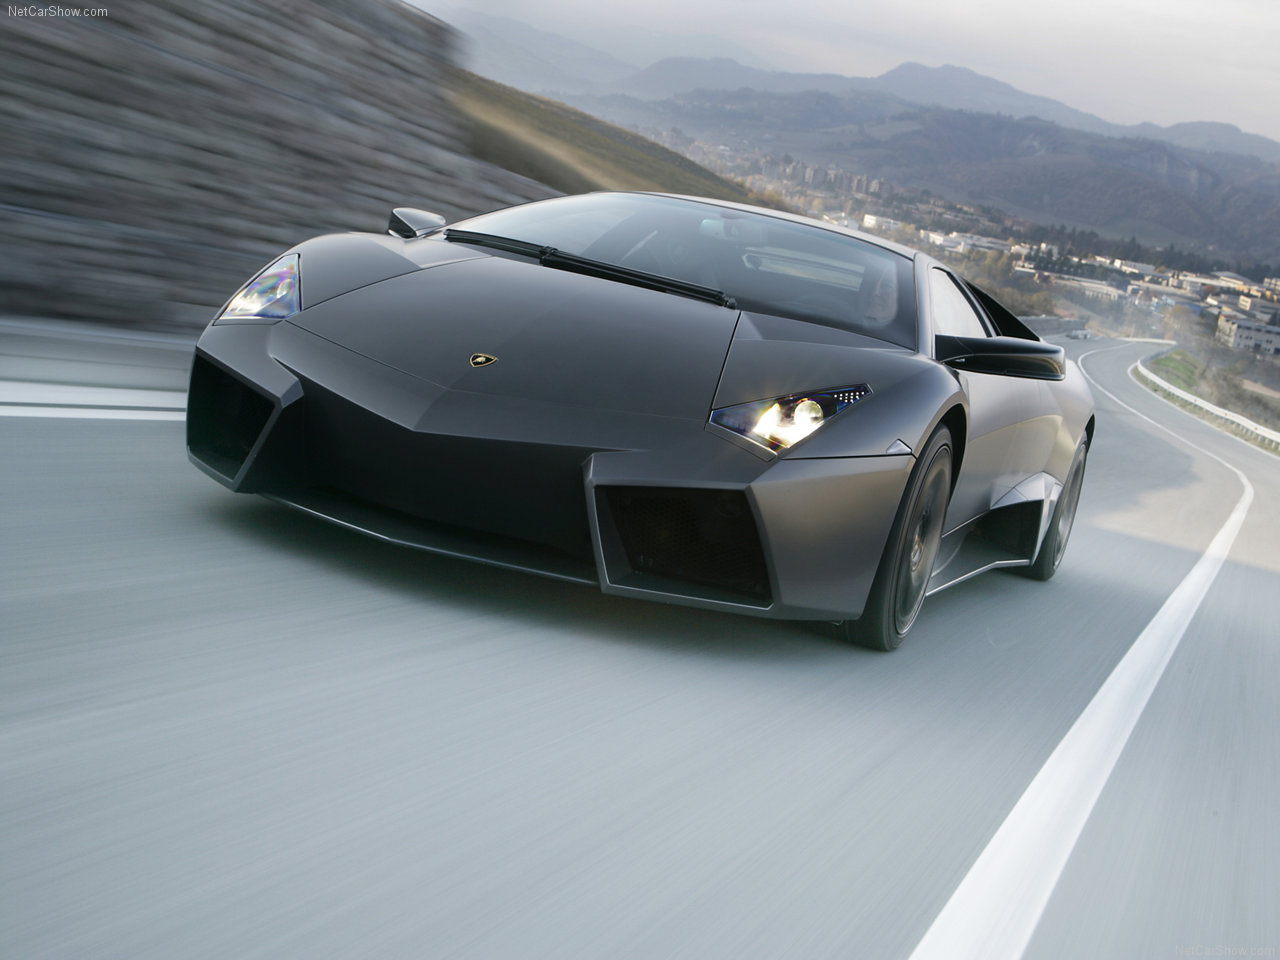 lamborghini reventon image wallpaper - photo #11